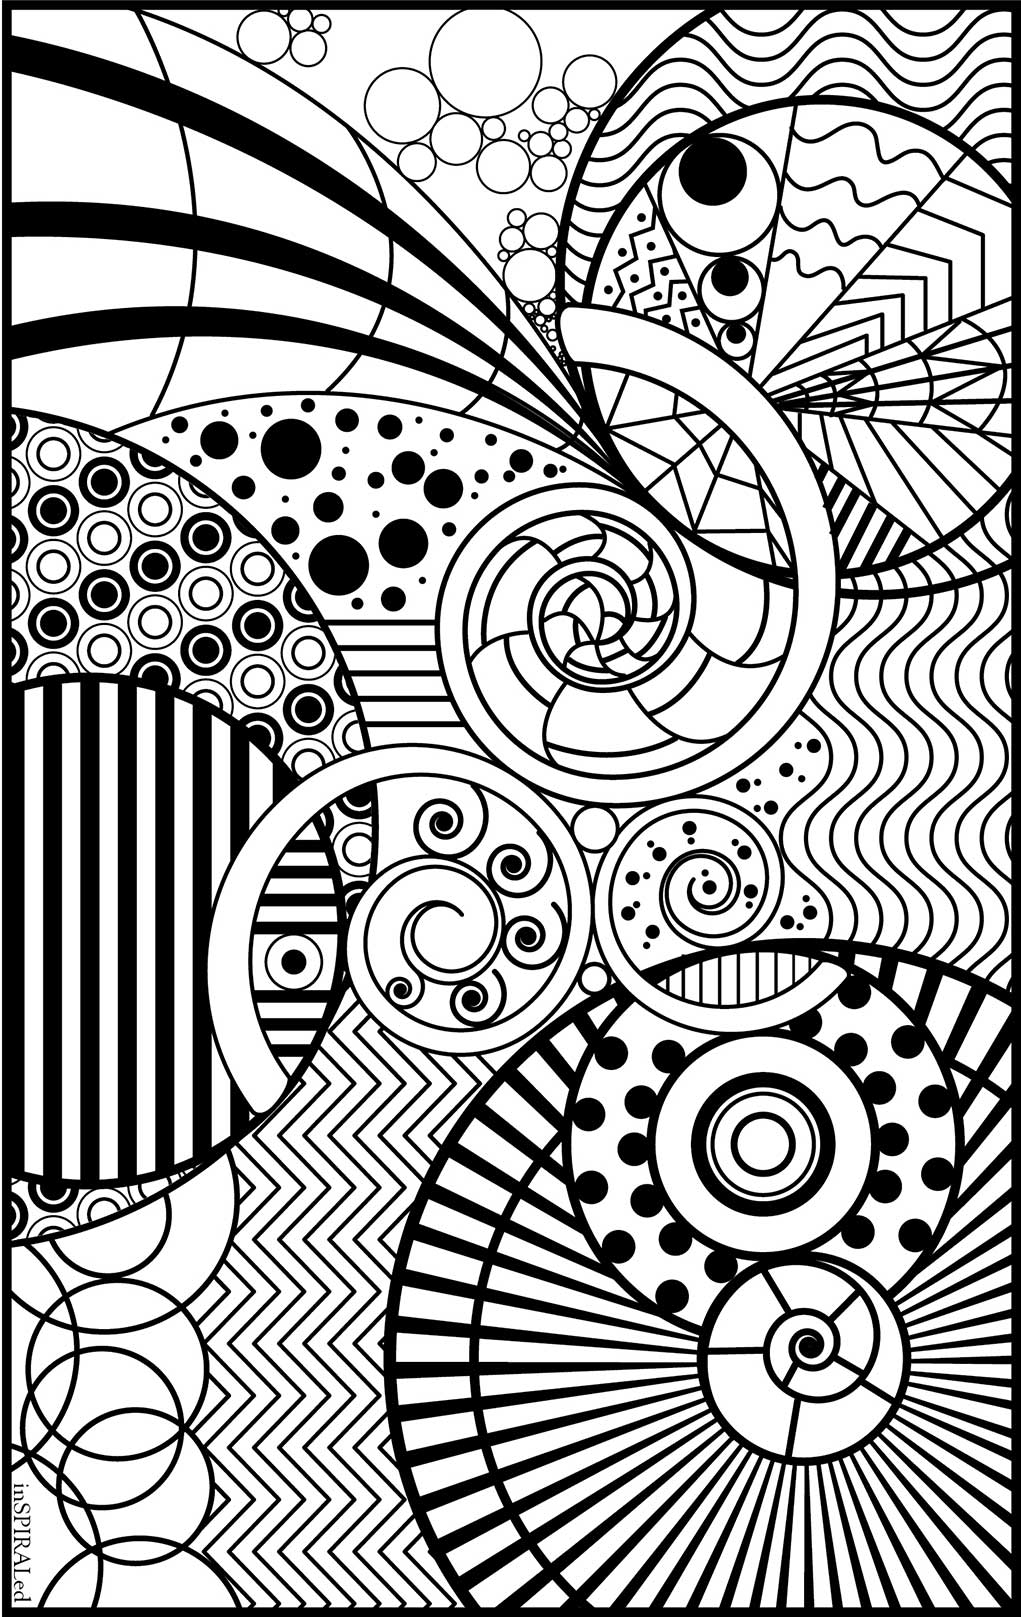 inSPIRALed Coloring Page   crayola.com   coloring pages for adults cool